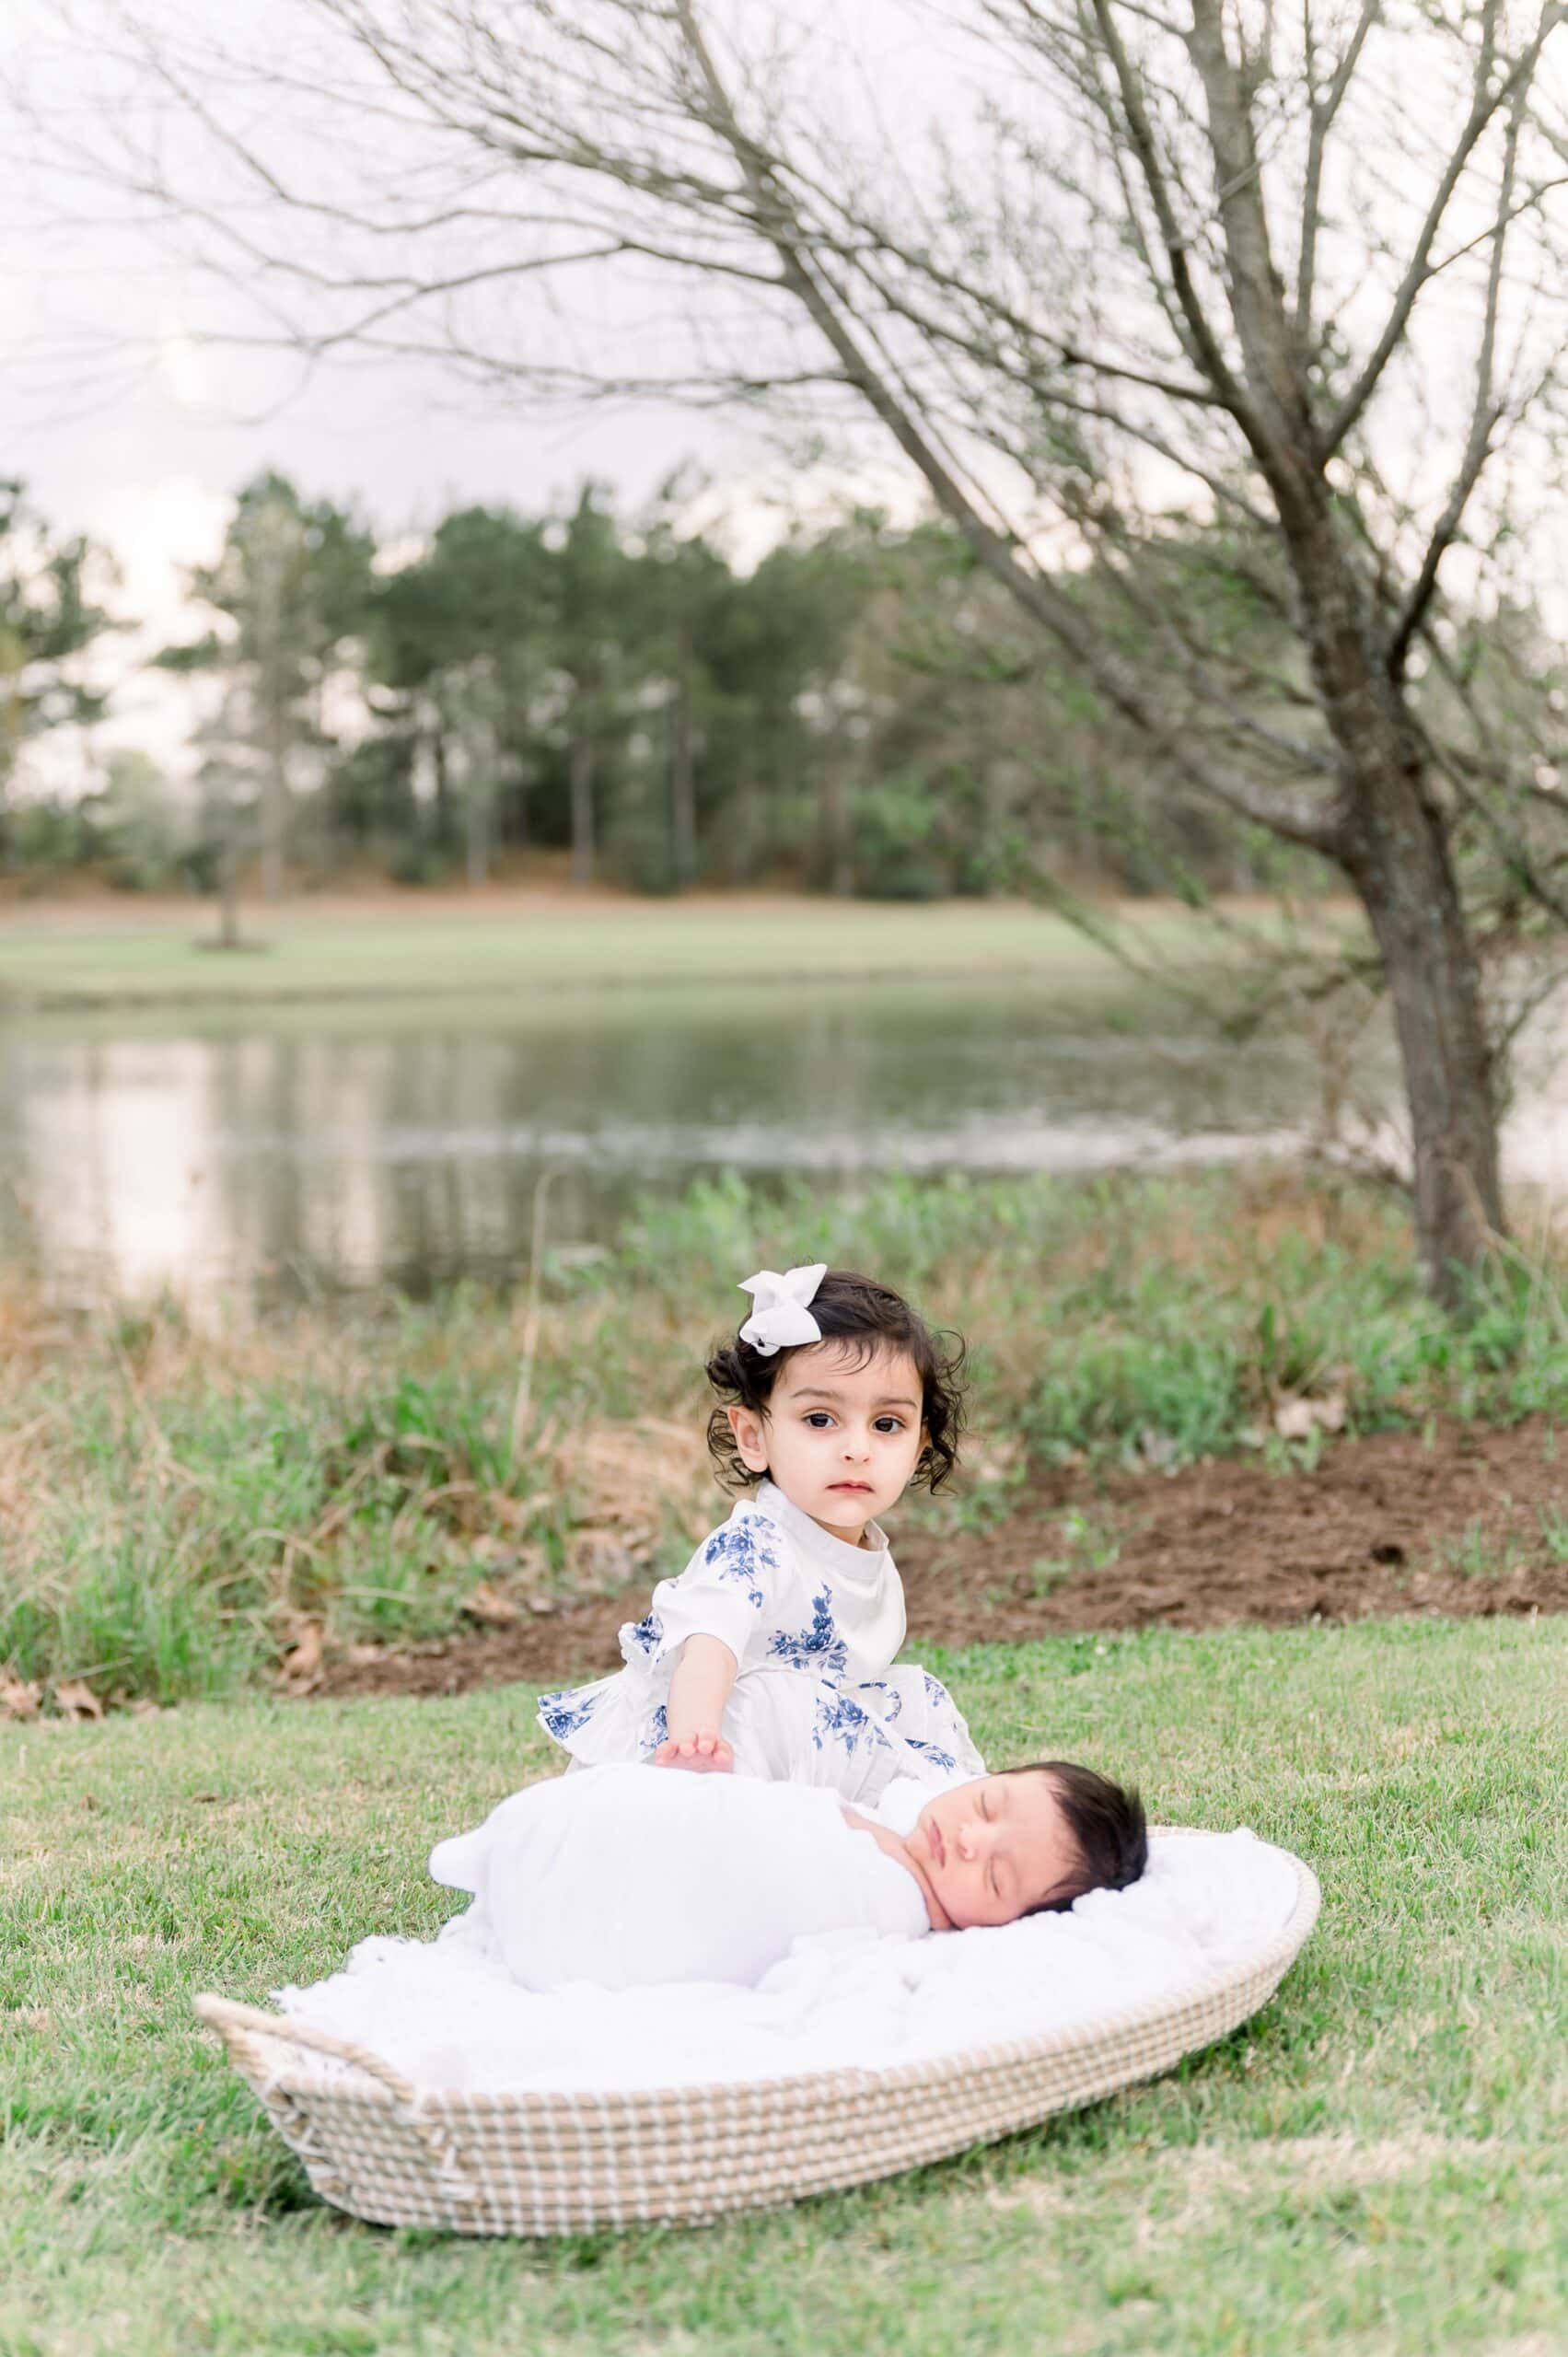 Big sister sitting next to baby brother during outdoor newborn session in Frisco. Photo by Aimee Hamilton Photography.